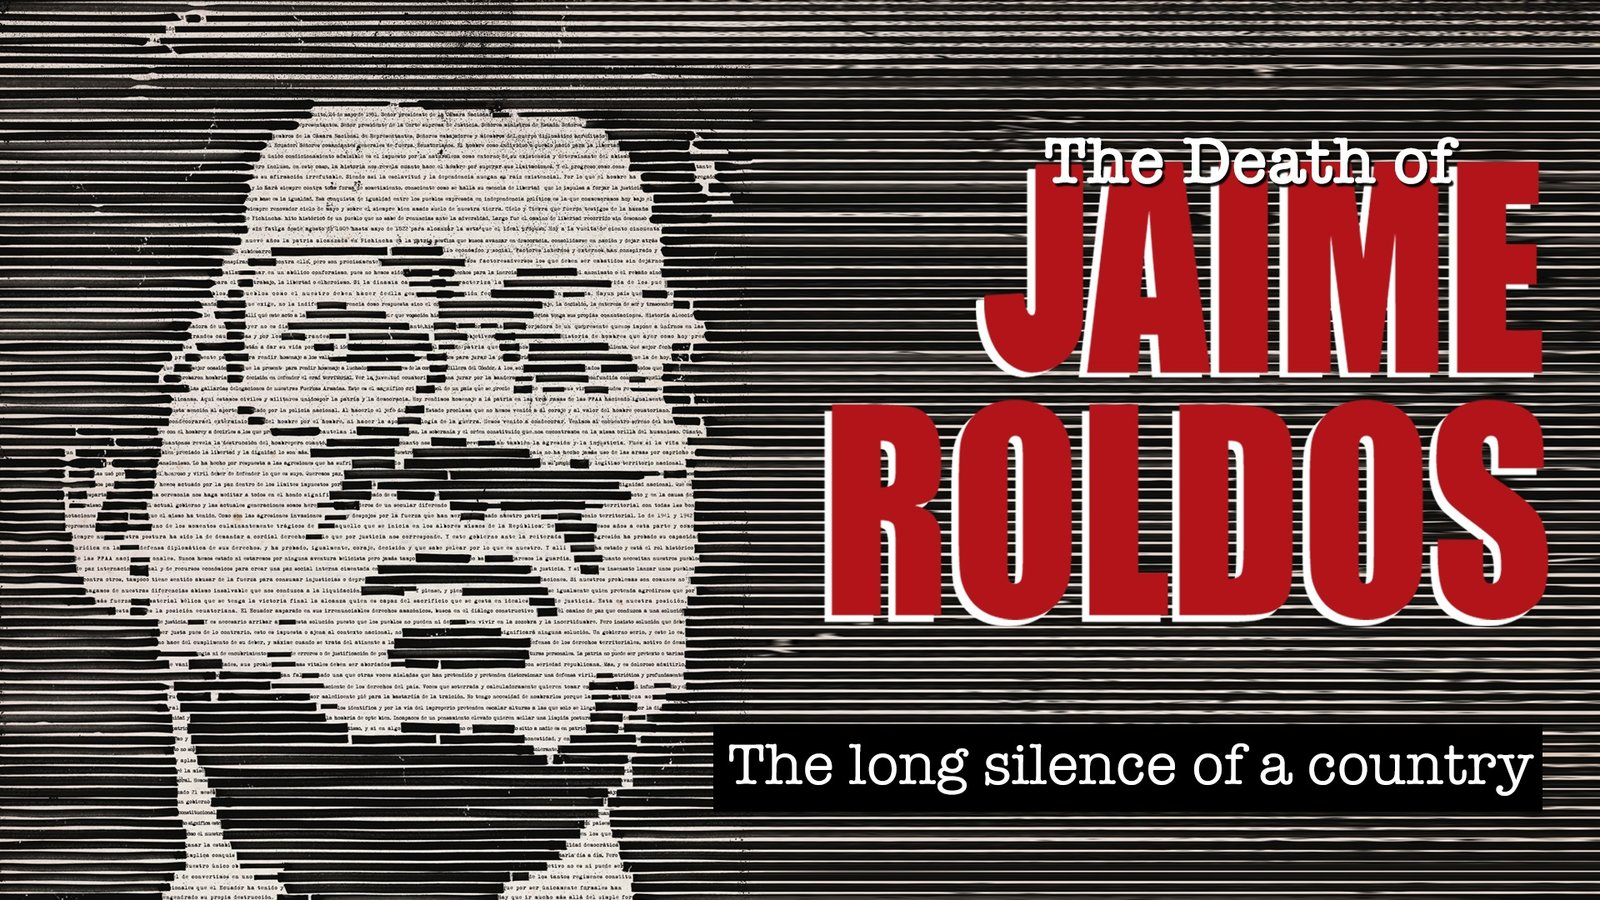 The Death of Jaime Roldós - Investigating the Suspicious Death of an Ecuadorian President